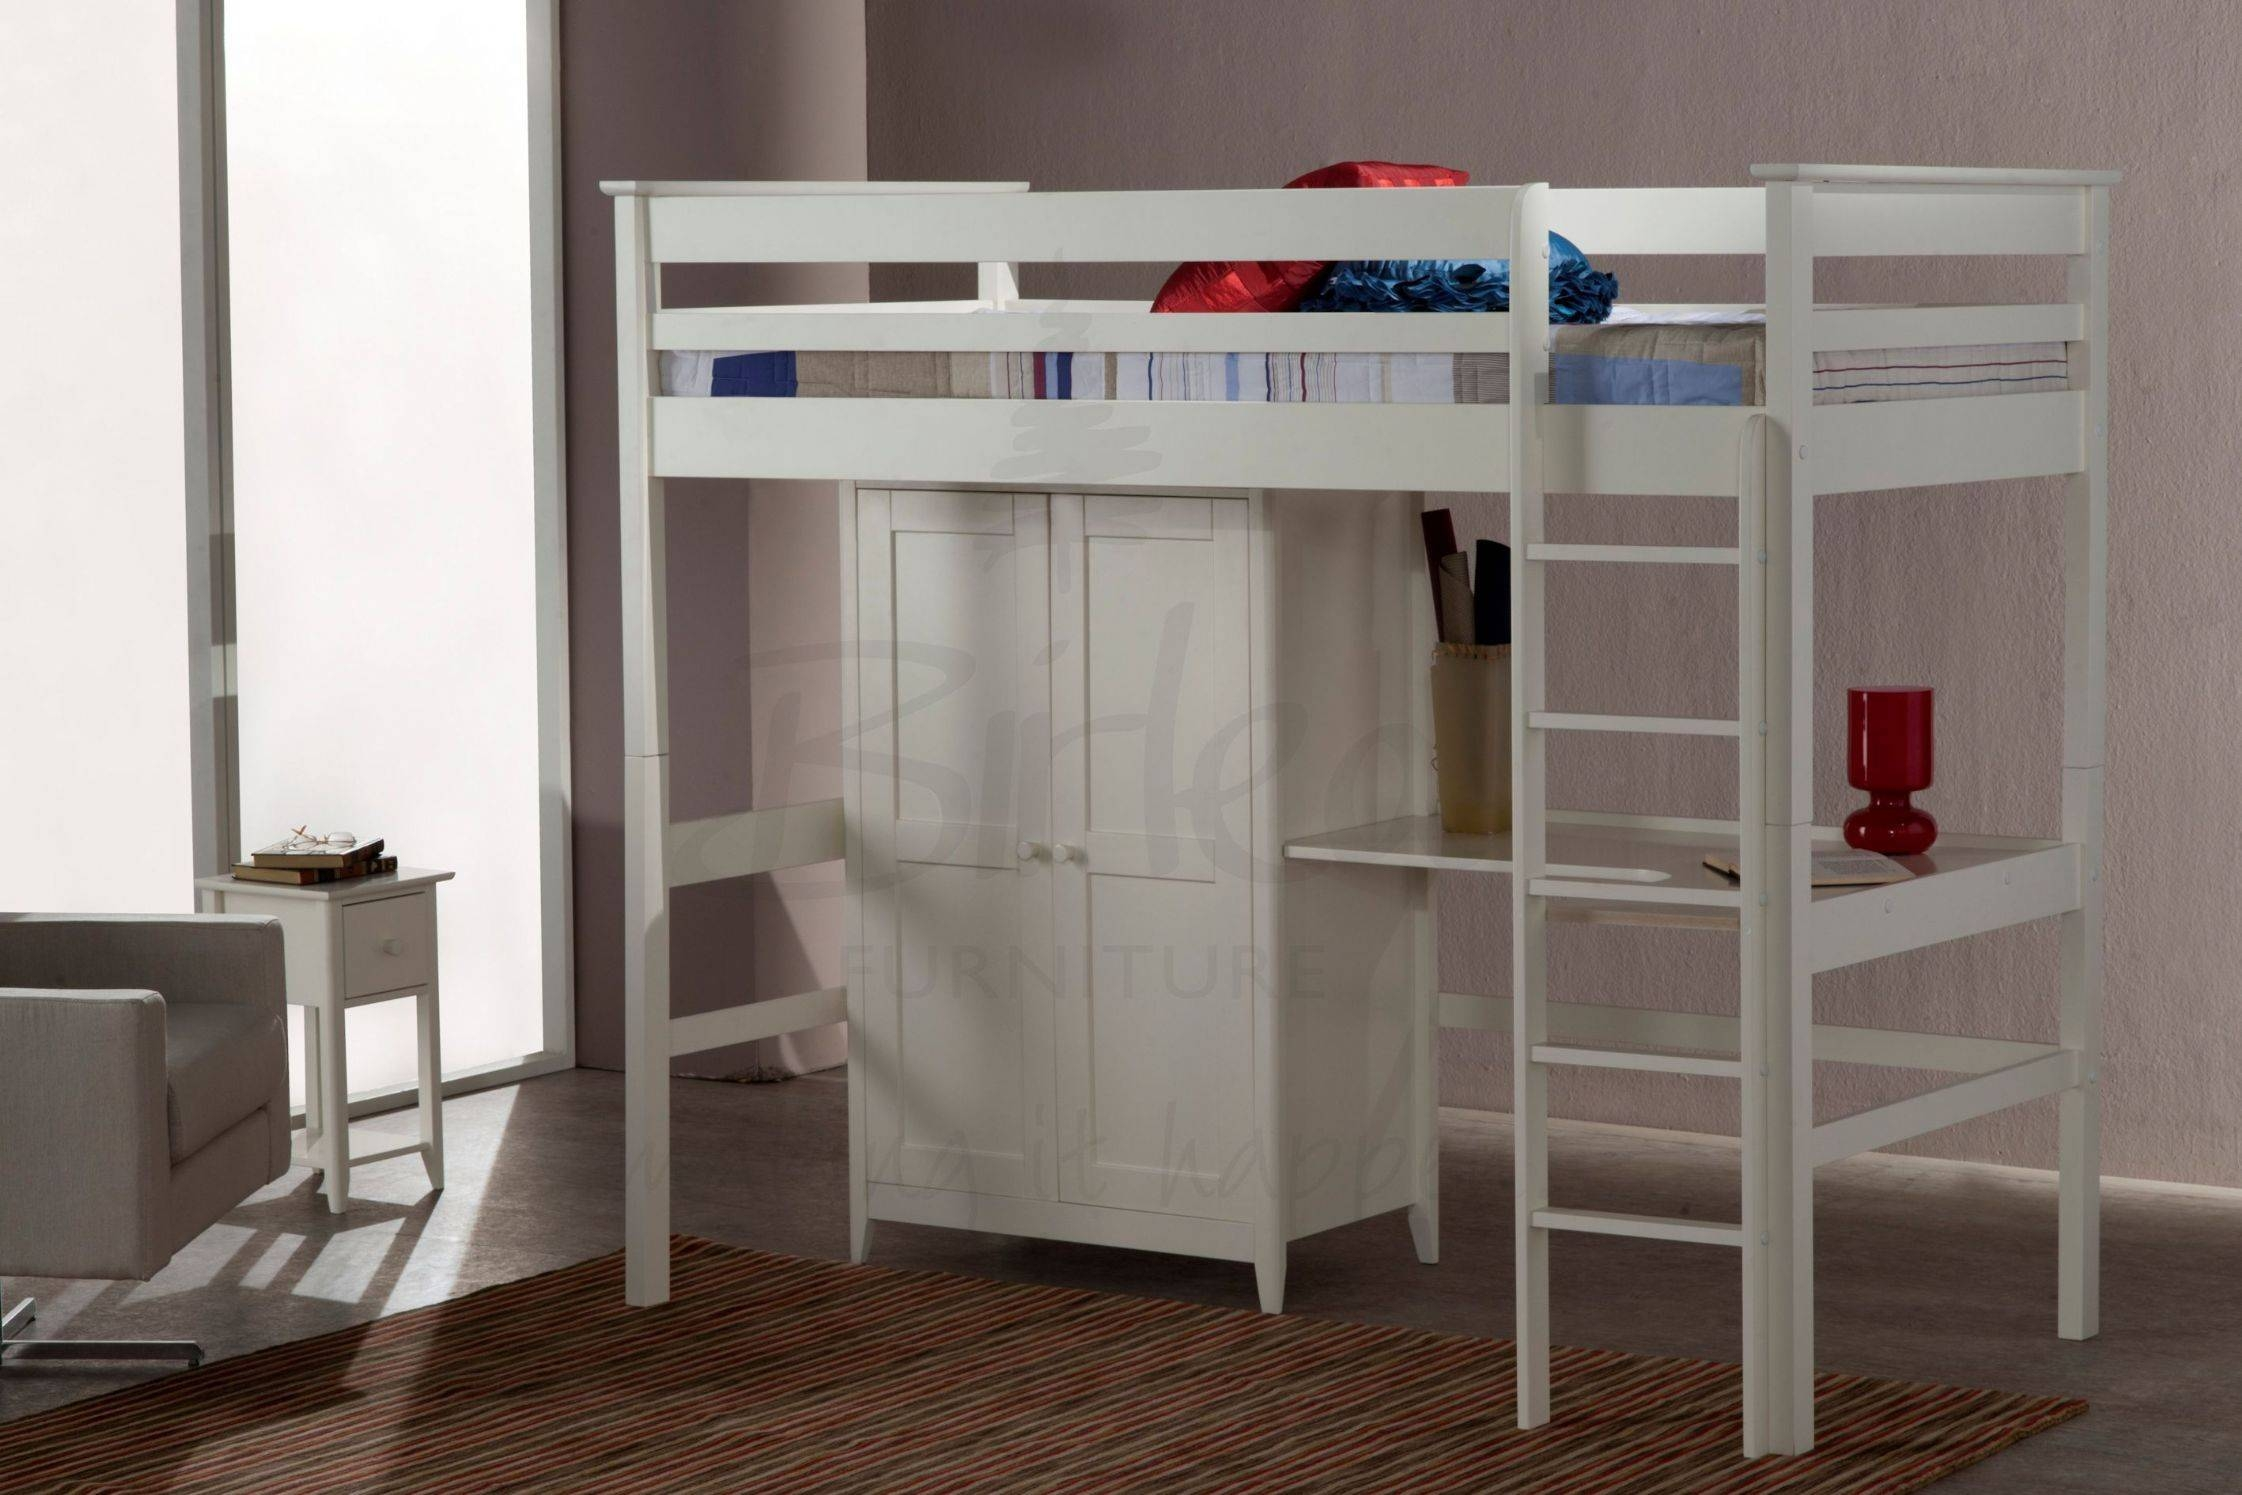 Cotswold High Sleeper Bed | Fully Assembled Bedroom Furniture With with  regard to High Sleeper With